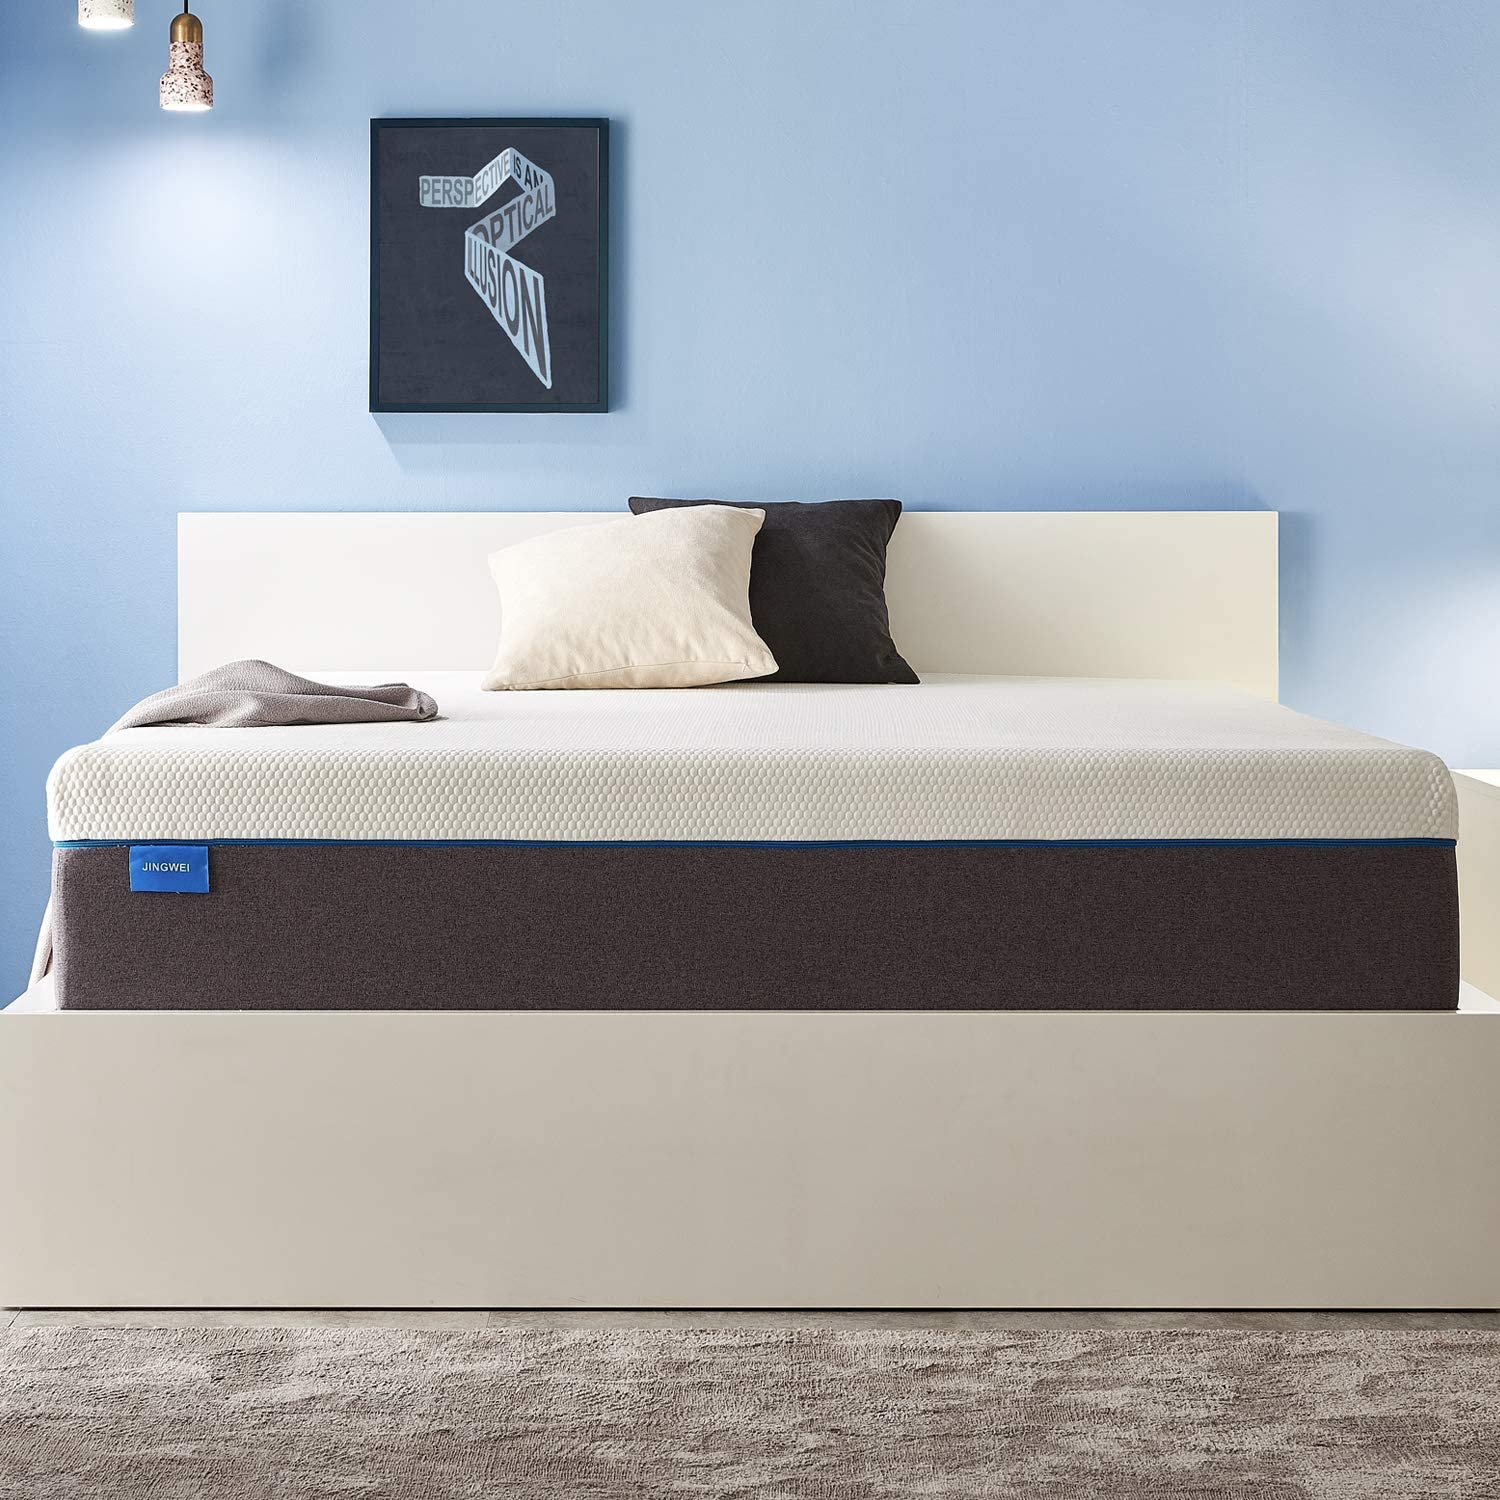 Queen Size Mattress, JINGWEI 7 Inches Cooling-Gel Memory Foam Mattress Bed in a Box, Certified Foam, Pressure Relief Supportive, Medium Firm